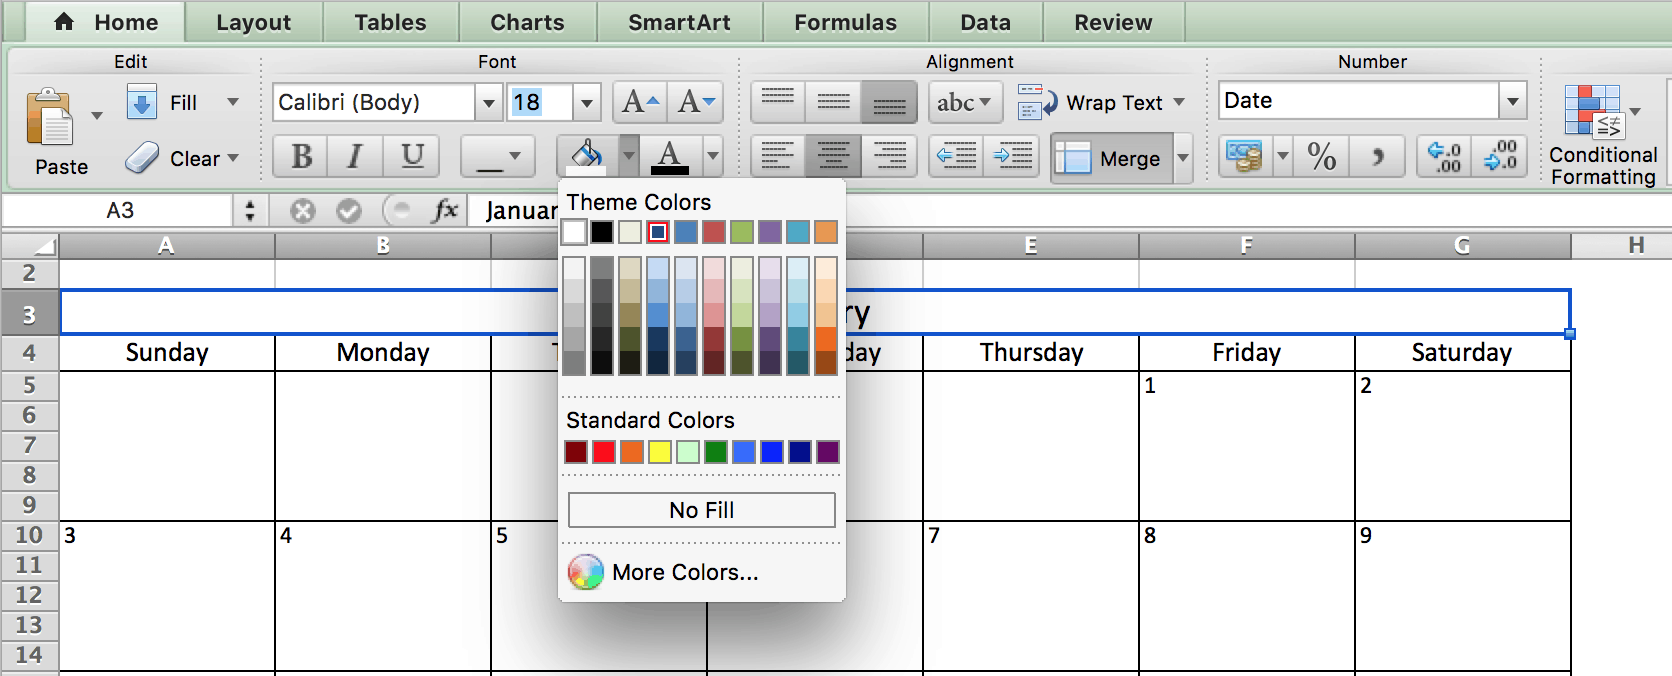 Ediblewildsus  Splendid Make A  Calendar In Excel Includes Free Template With Exciting Choosing Colors  Calendar In Excel With Beauteous T Test Function Excel Also Plus Minus Formula In Excel In Addition How To Make A Box Plot On Excel And Most Useful Excel Tricks As Well As Columns Excel Additionally Excel Age Calculation From Smartsheetcom With Ediblewildsus  Exciting Make A  Calendar In Excel Includes Free Template With Beauteous Choosing Colors  Calendar In Excel And Splendid T Test Function Excel Also Plus Minus Formula In Excel In Addition How To Make A Box Plot On Excel From Smartsheetcom